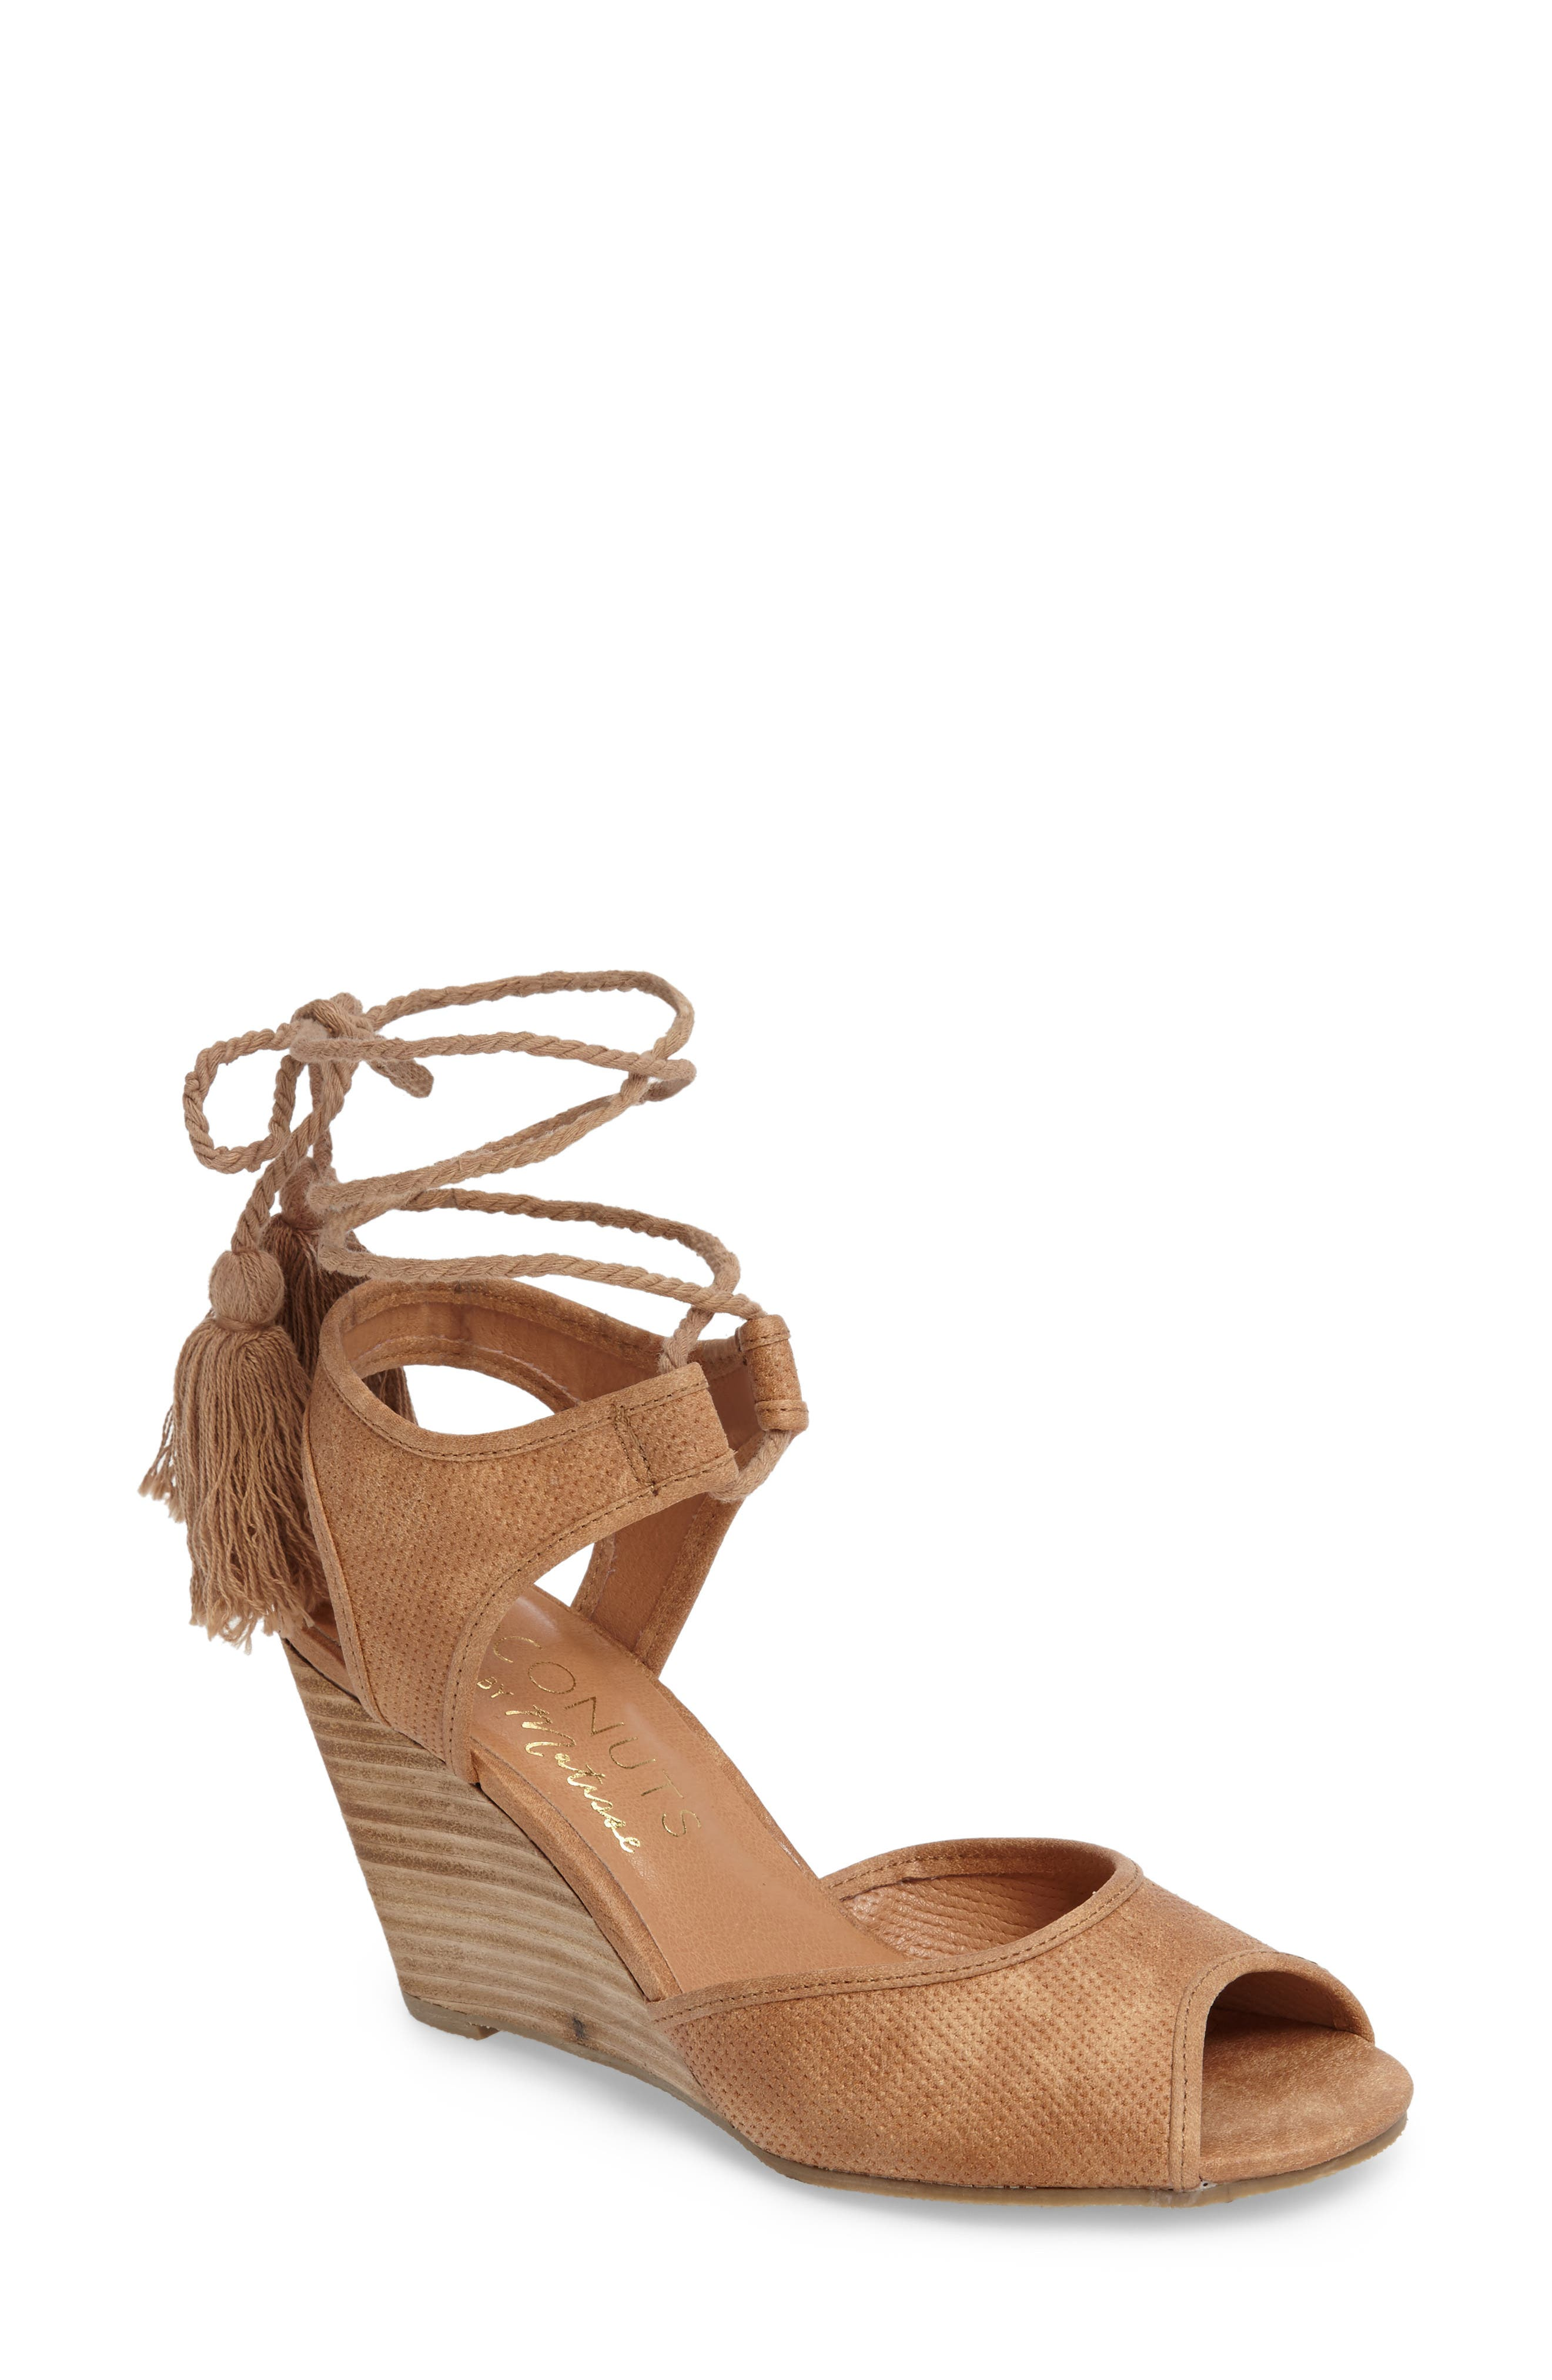 Coconuts by Matisse Unify Wedge Sandal,                             Main thumbnail 1, color,                             255